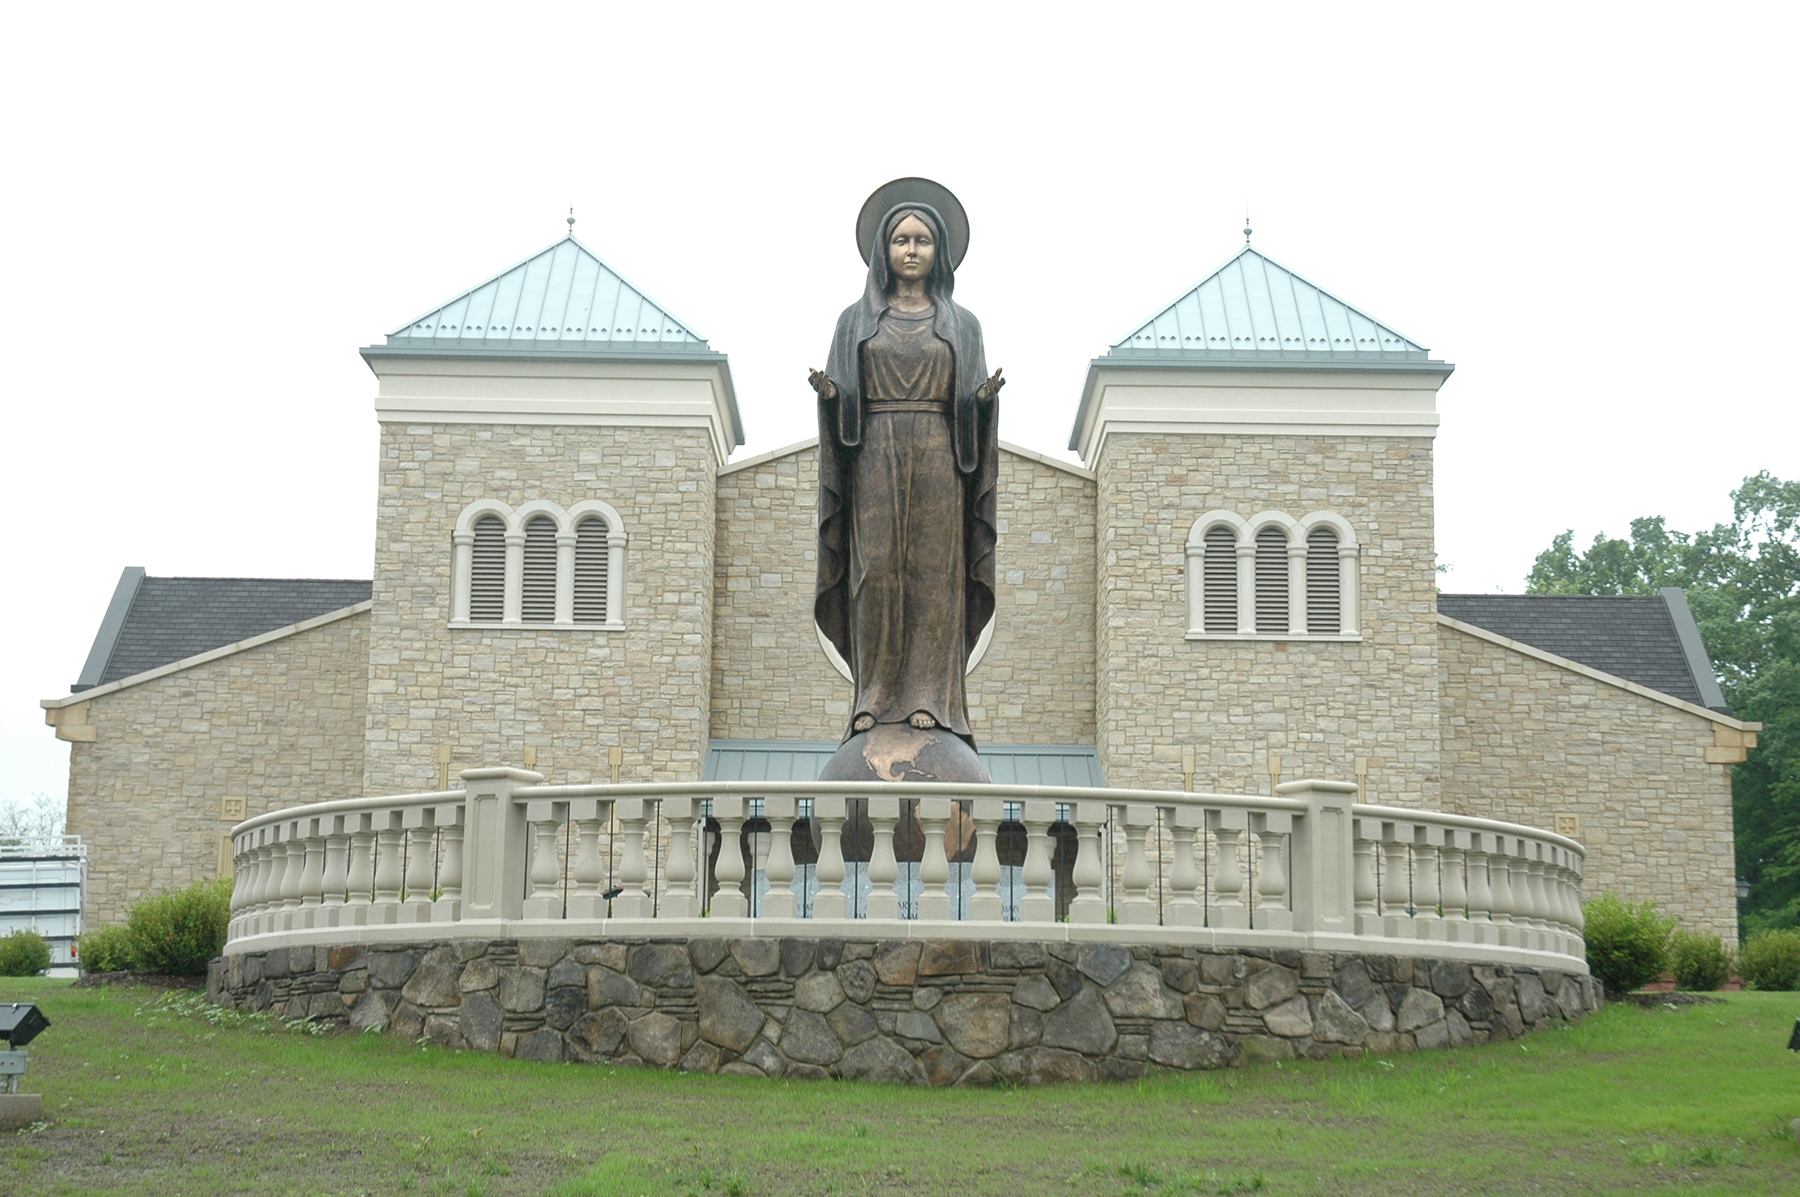 stone building with woman statue in front